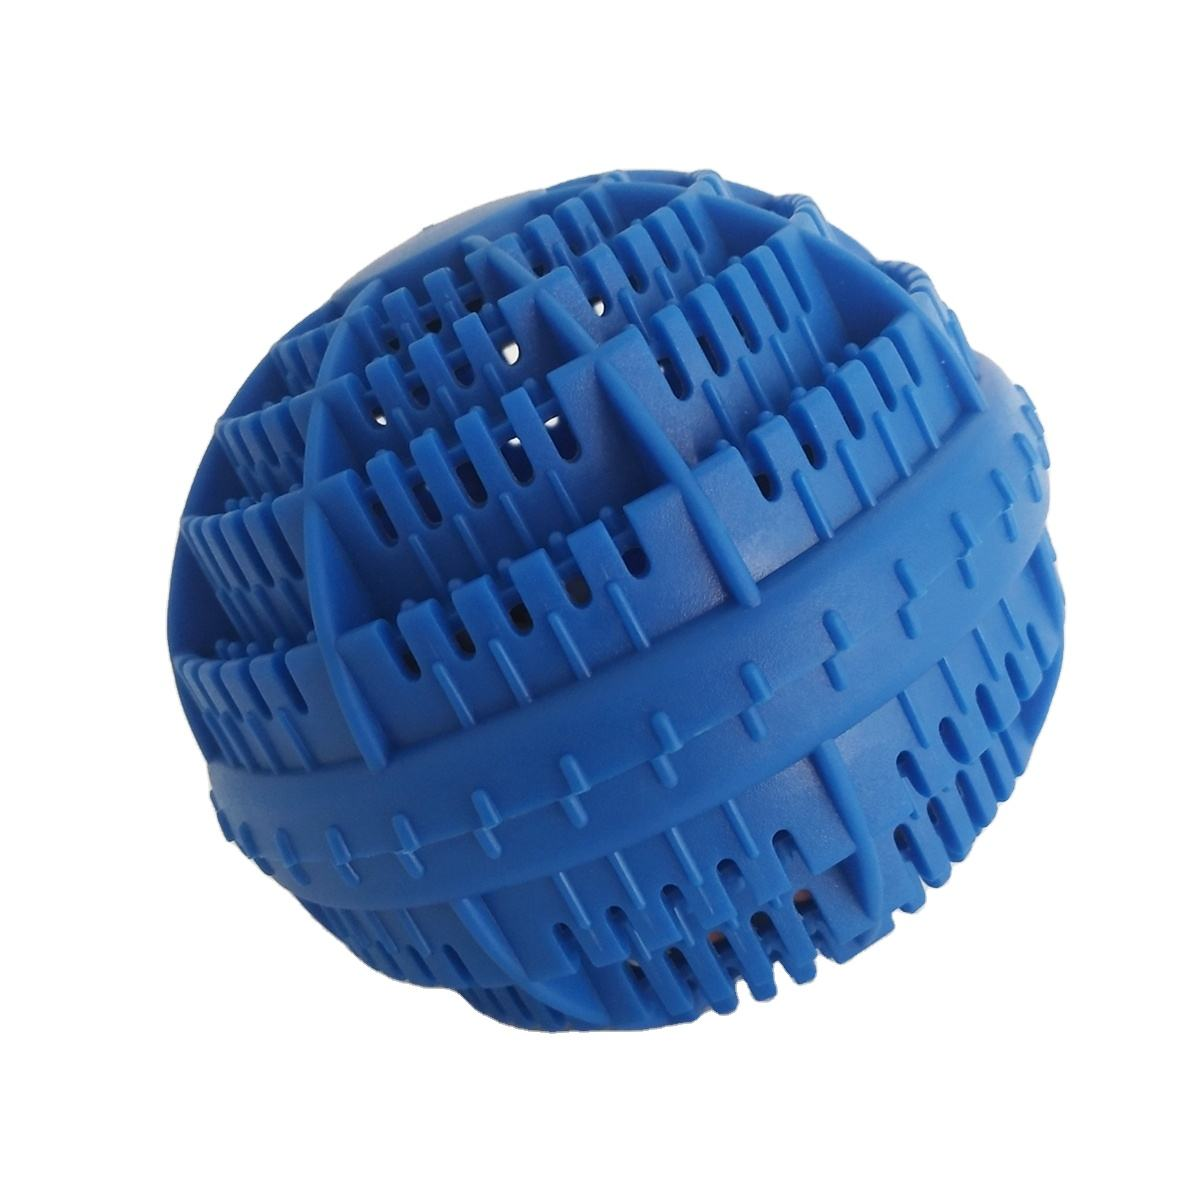 JLT-1003 Wash Ball - blue,white,pink and so on Color laundry ball washing clean ball laundry